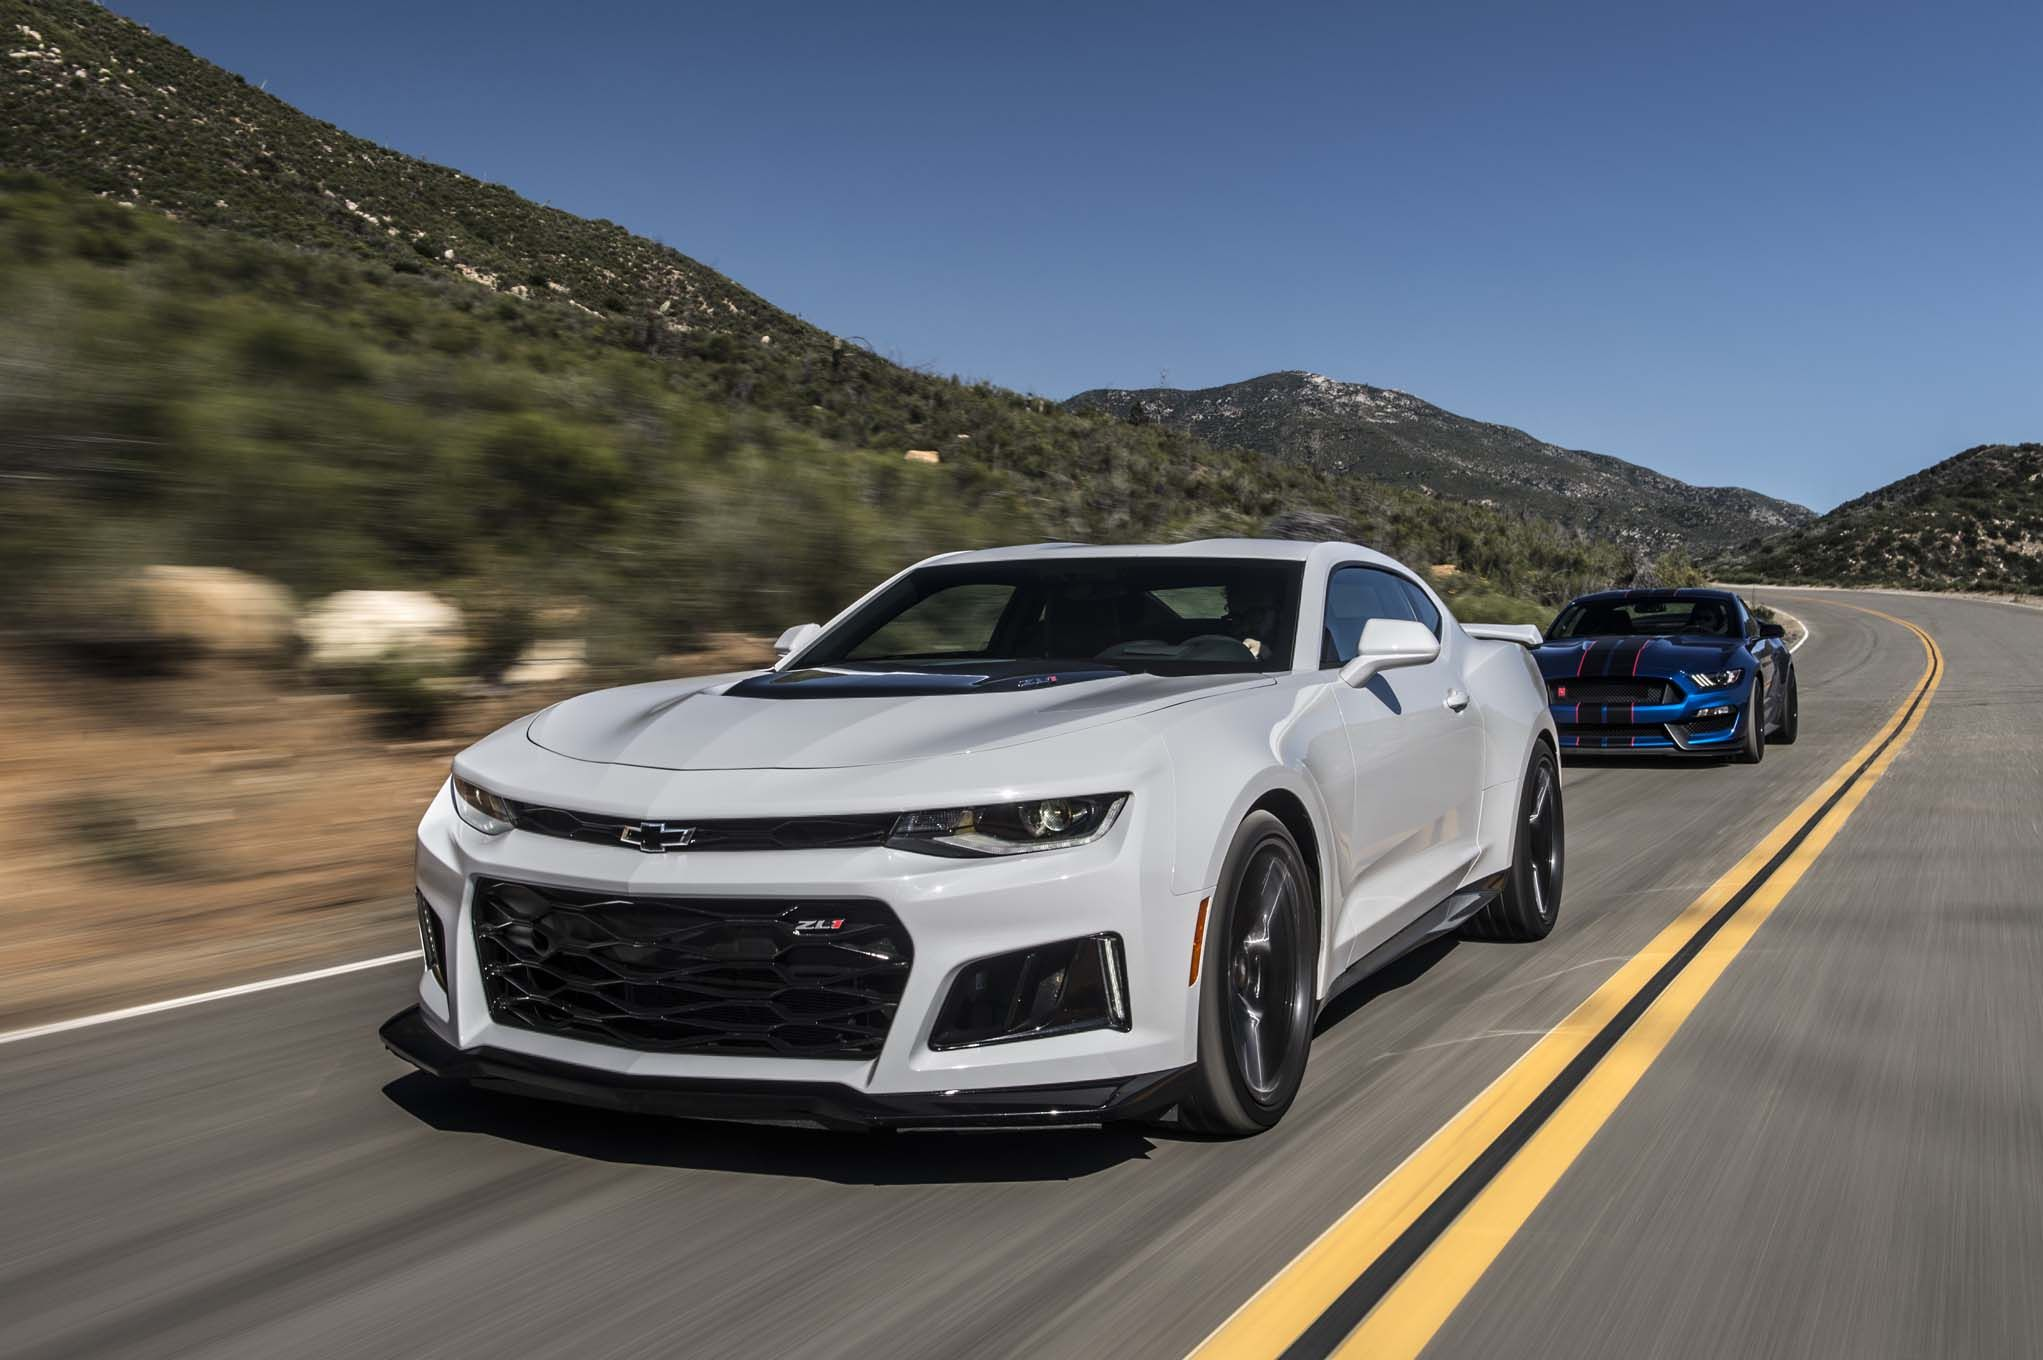 2014 zl1 camaro recaro seats html 2017 2018 cars reviews - Latest 28 Photos And 28 Tech Facts About Camaro Z 28 Will Make Your Knees Weak Z 28 R Preview Chevrolet Camaro Chevrolet And Cars